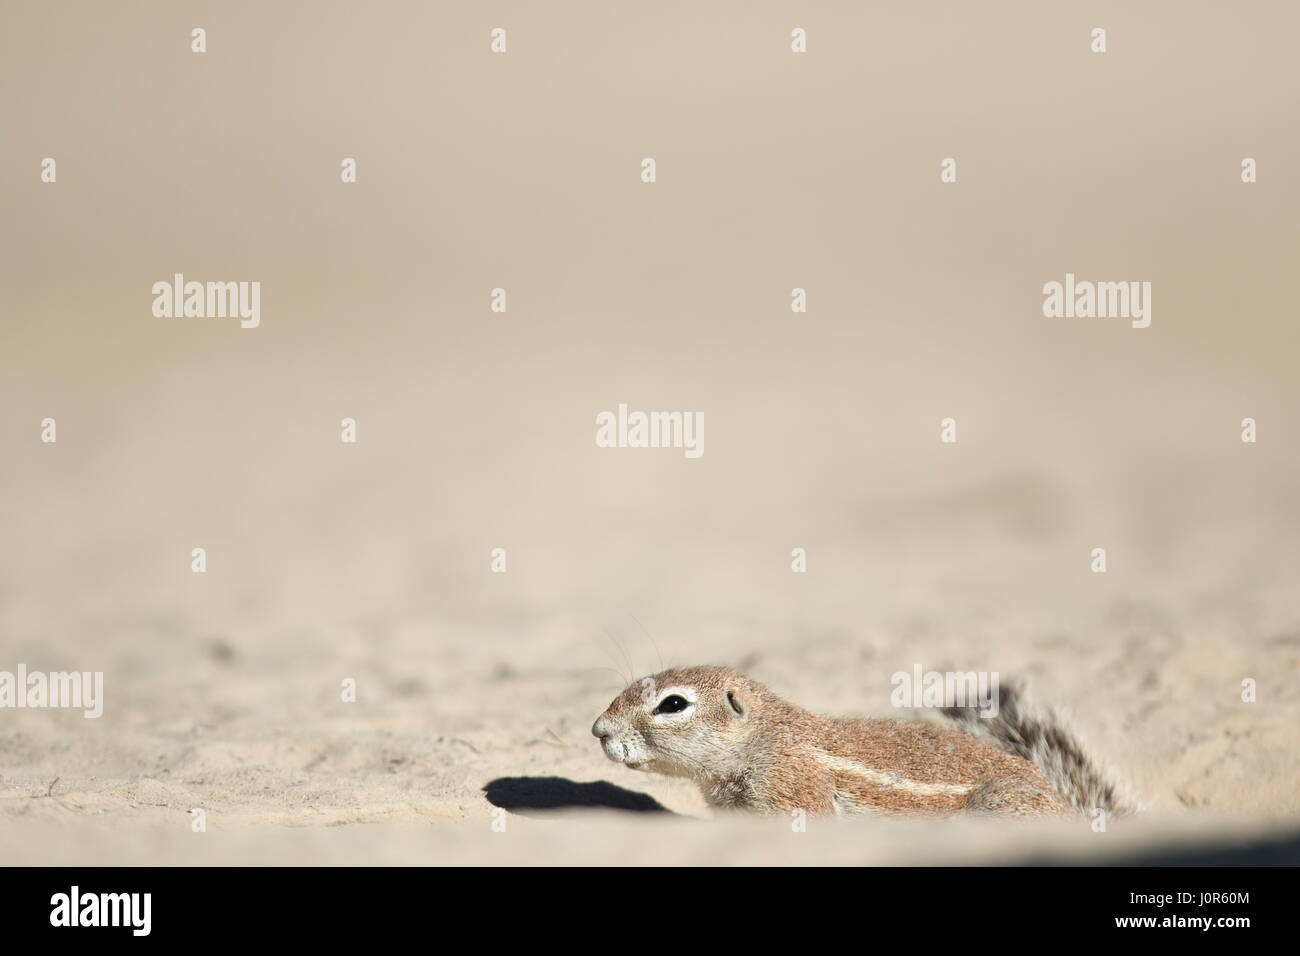 Ground Squirrel - Stock Image